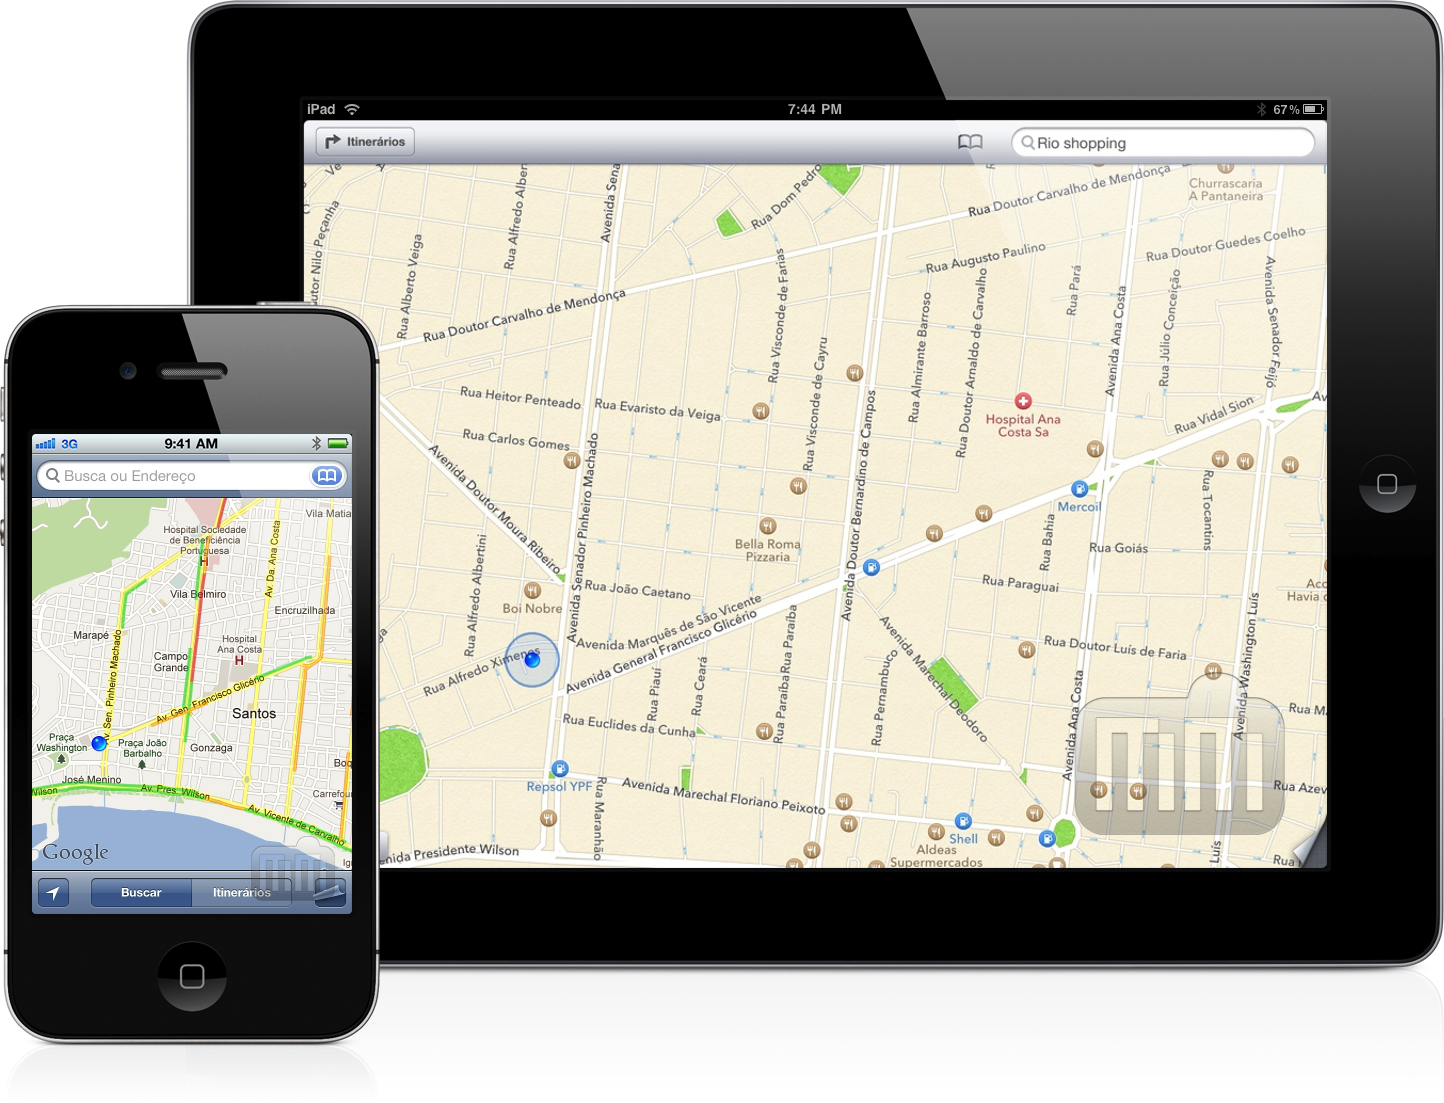 Mapas antigo no iPhone e Mapas do iOS 6 no iPad